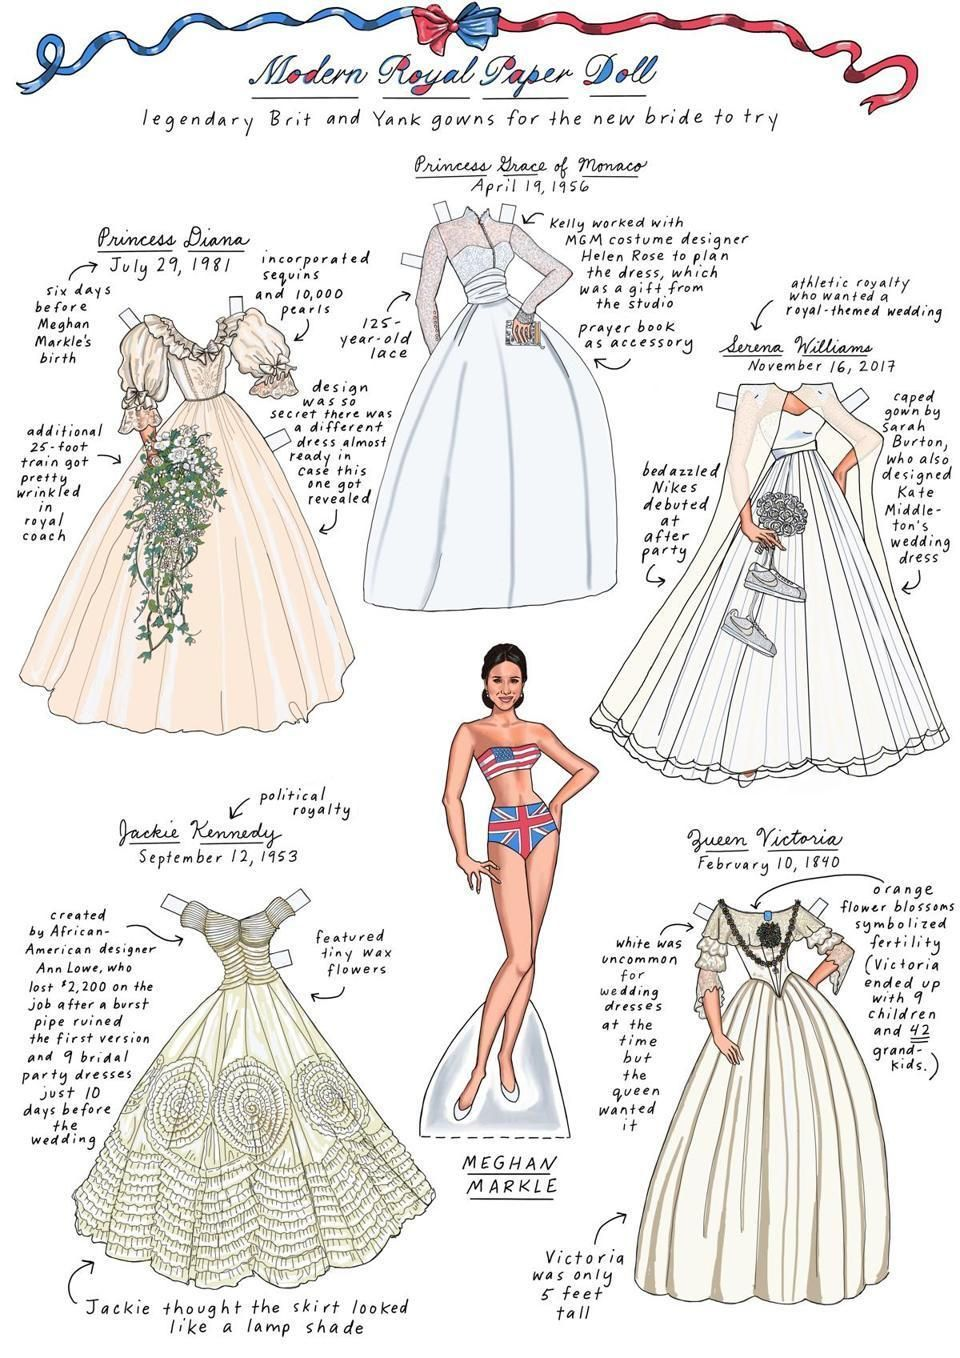 A Paper Doll Version Of Famous Wedding Dresses Meghan Markle Should Try The Boston Globe Paper Dolls Famous Wedding Dresses Paper Dolls Printable